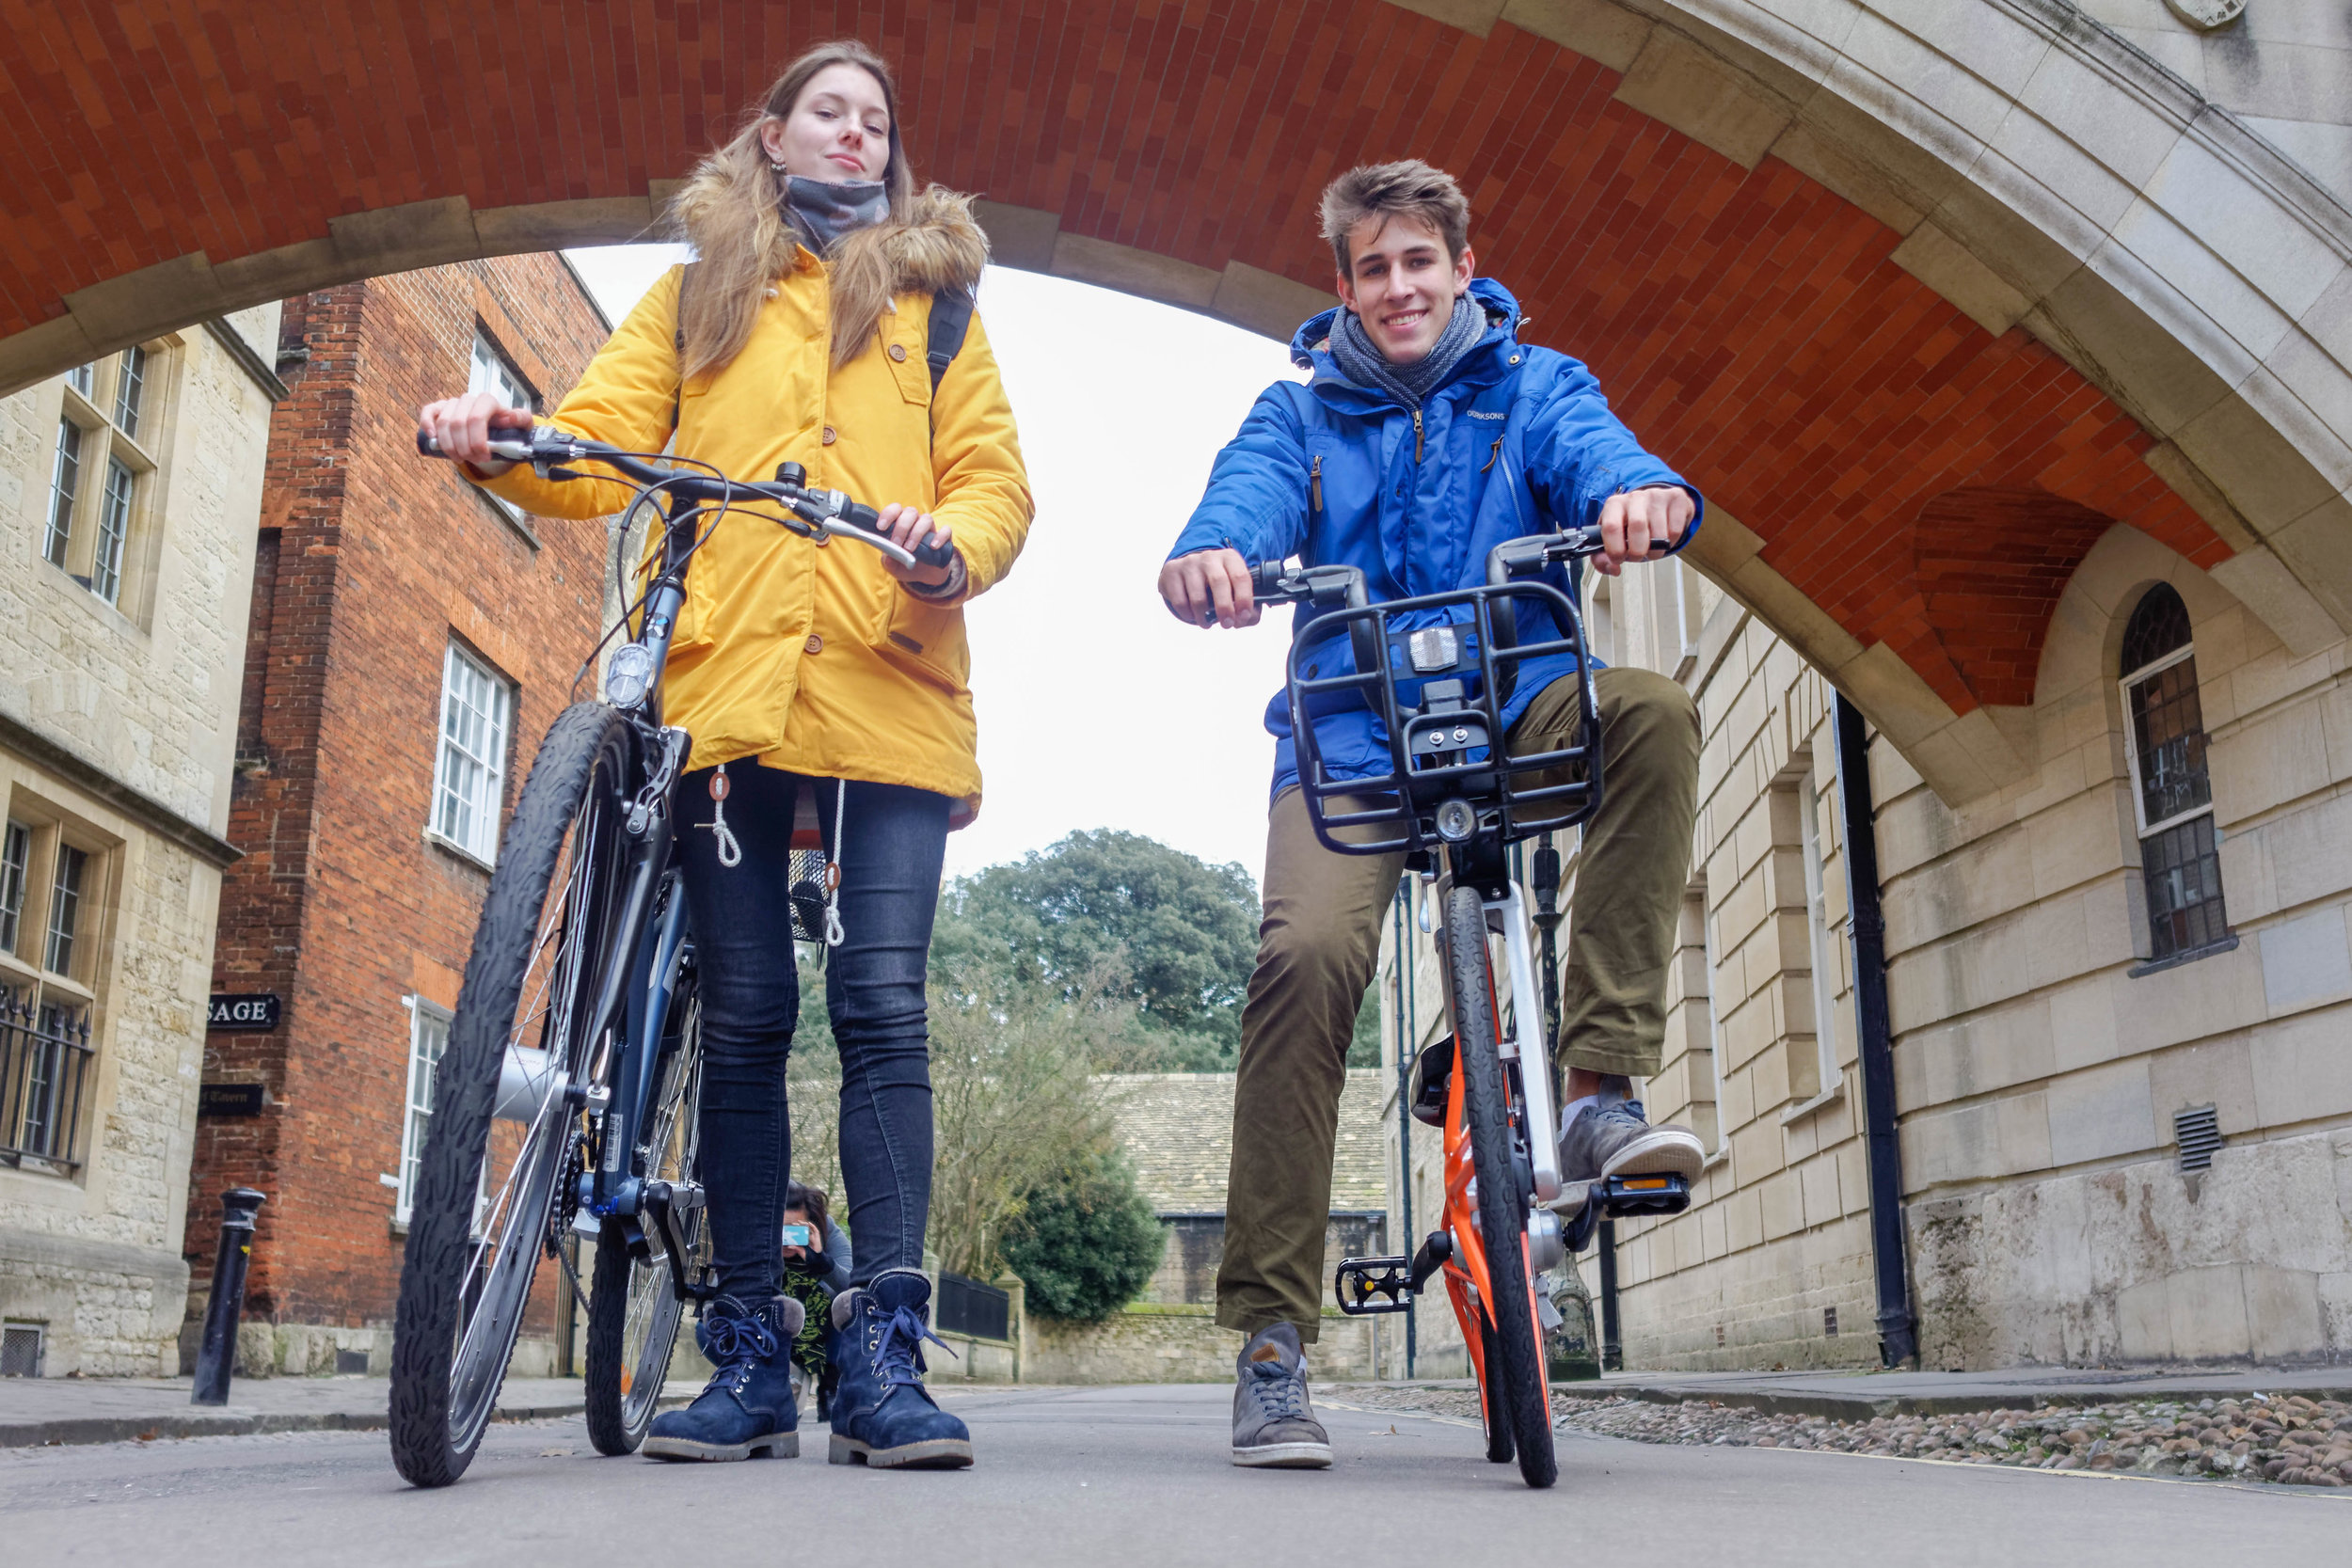 Cycle.land interns Anja and Max, featuring one of our community bikes and a mobike.